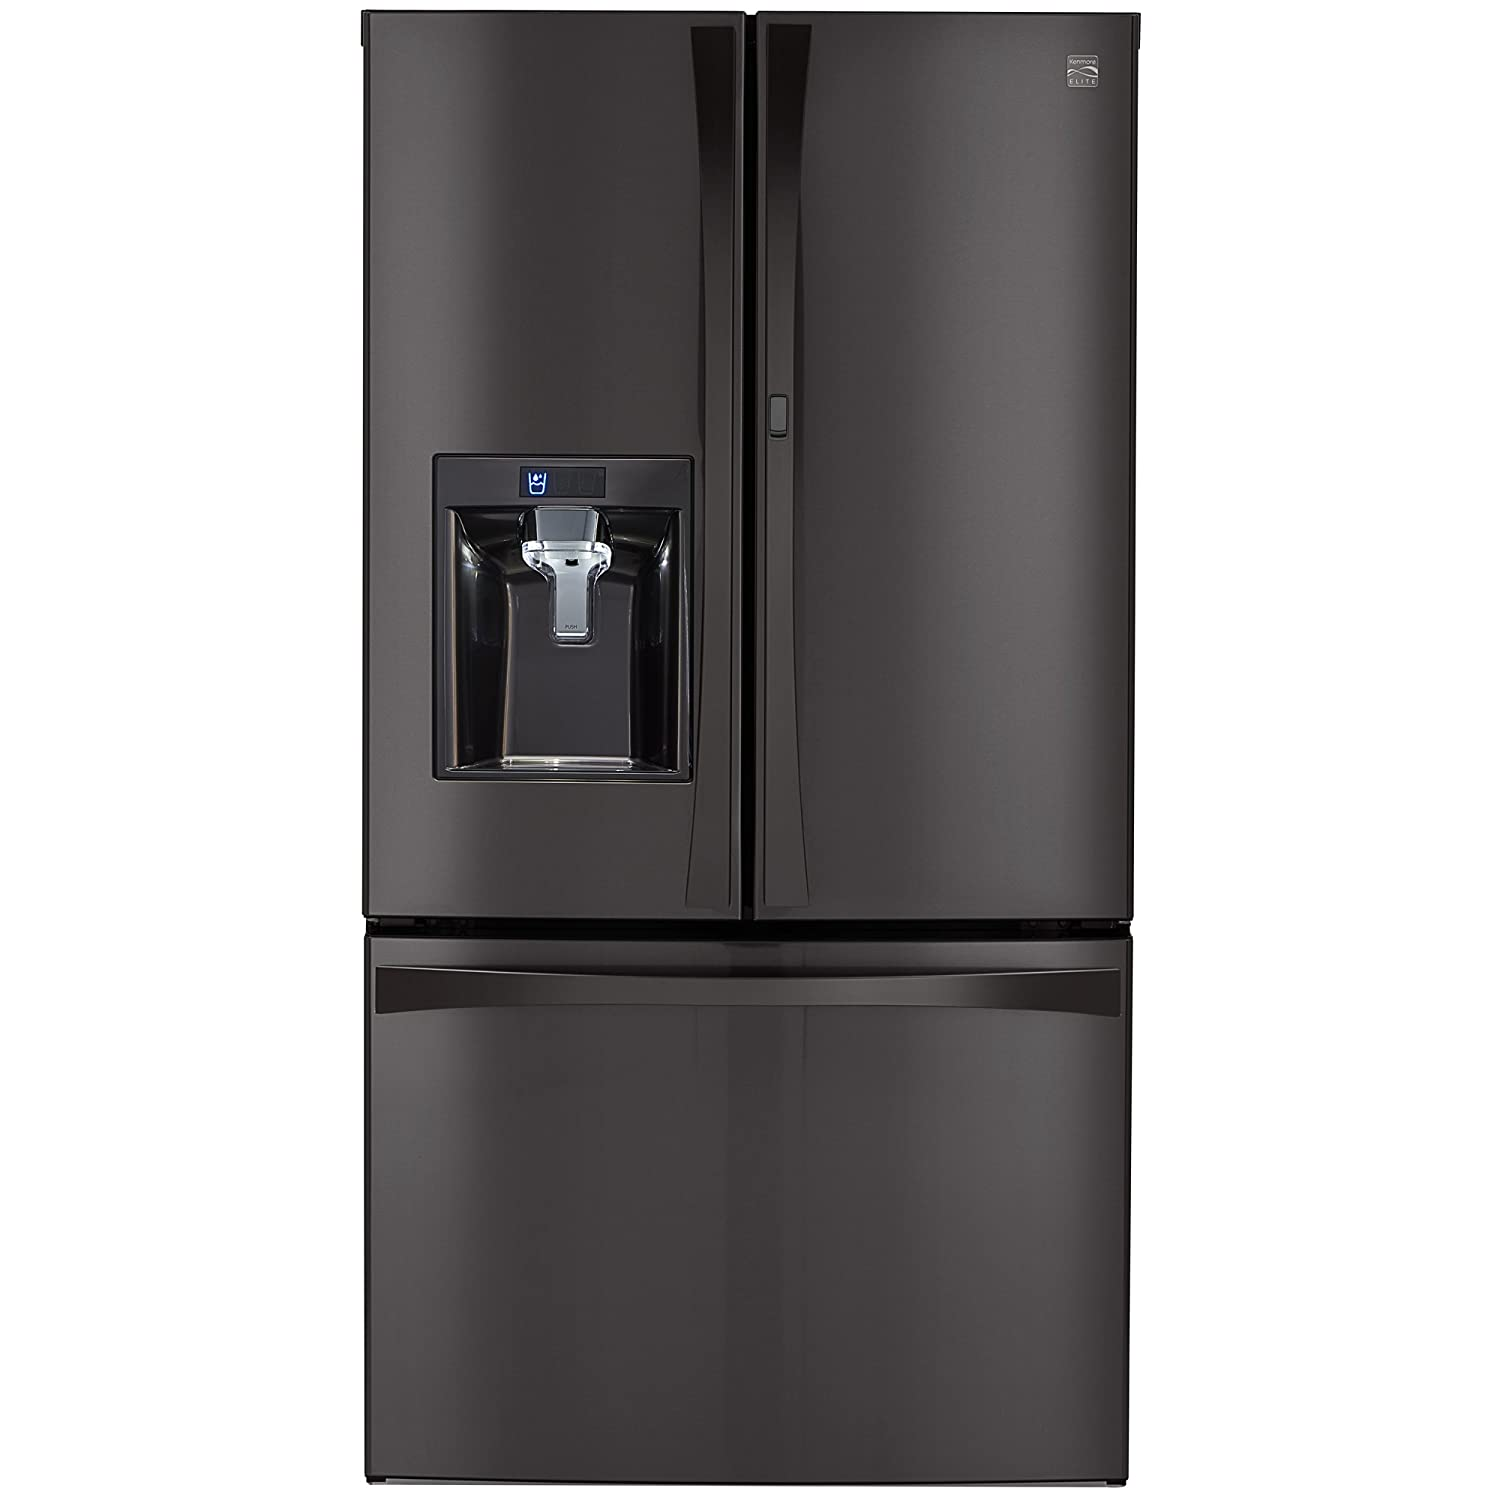 Kenmore Elite 04673167 28.5 cu. ft. French Door Bottom Freezer Refrigerator with Grab-N-Go Door in Black Stainless Steel, includes delivery and hookup (Available in select cities only)